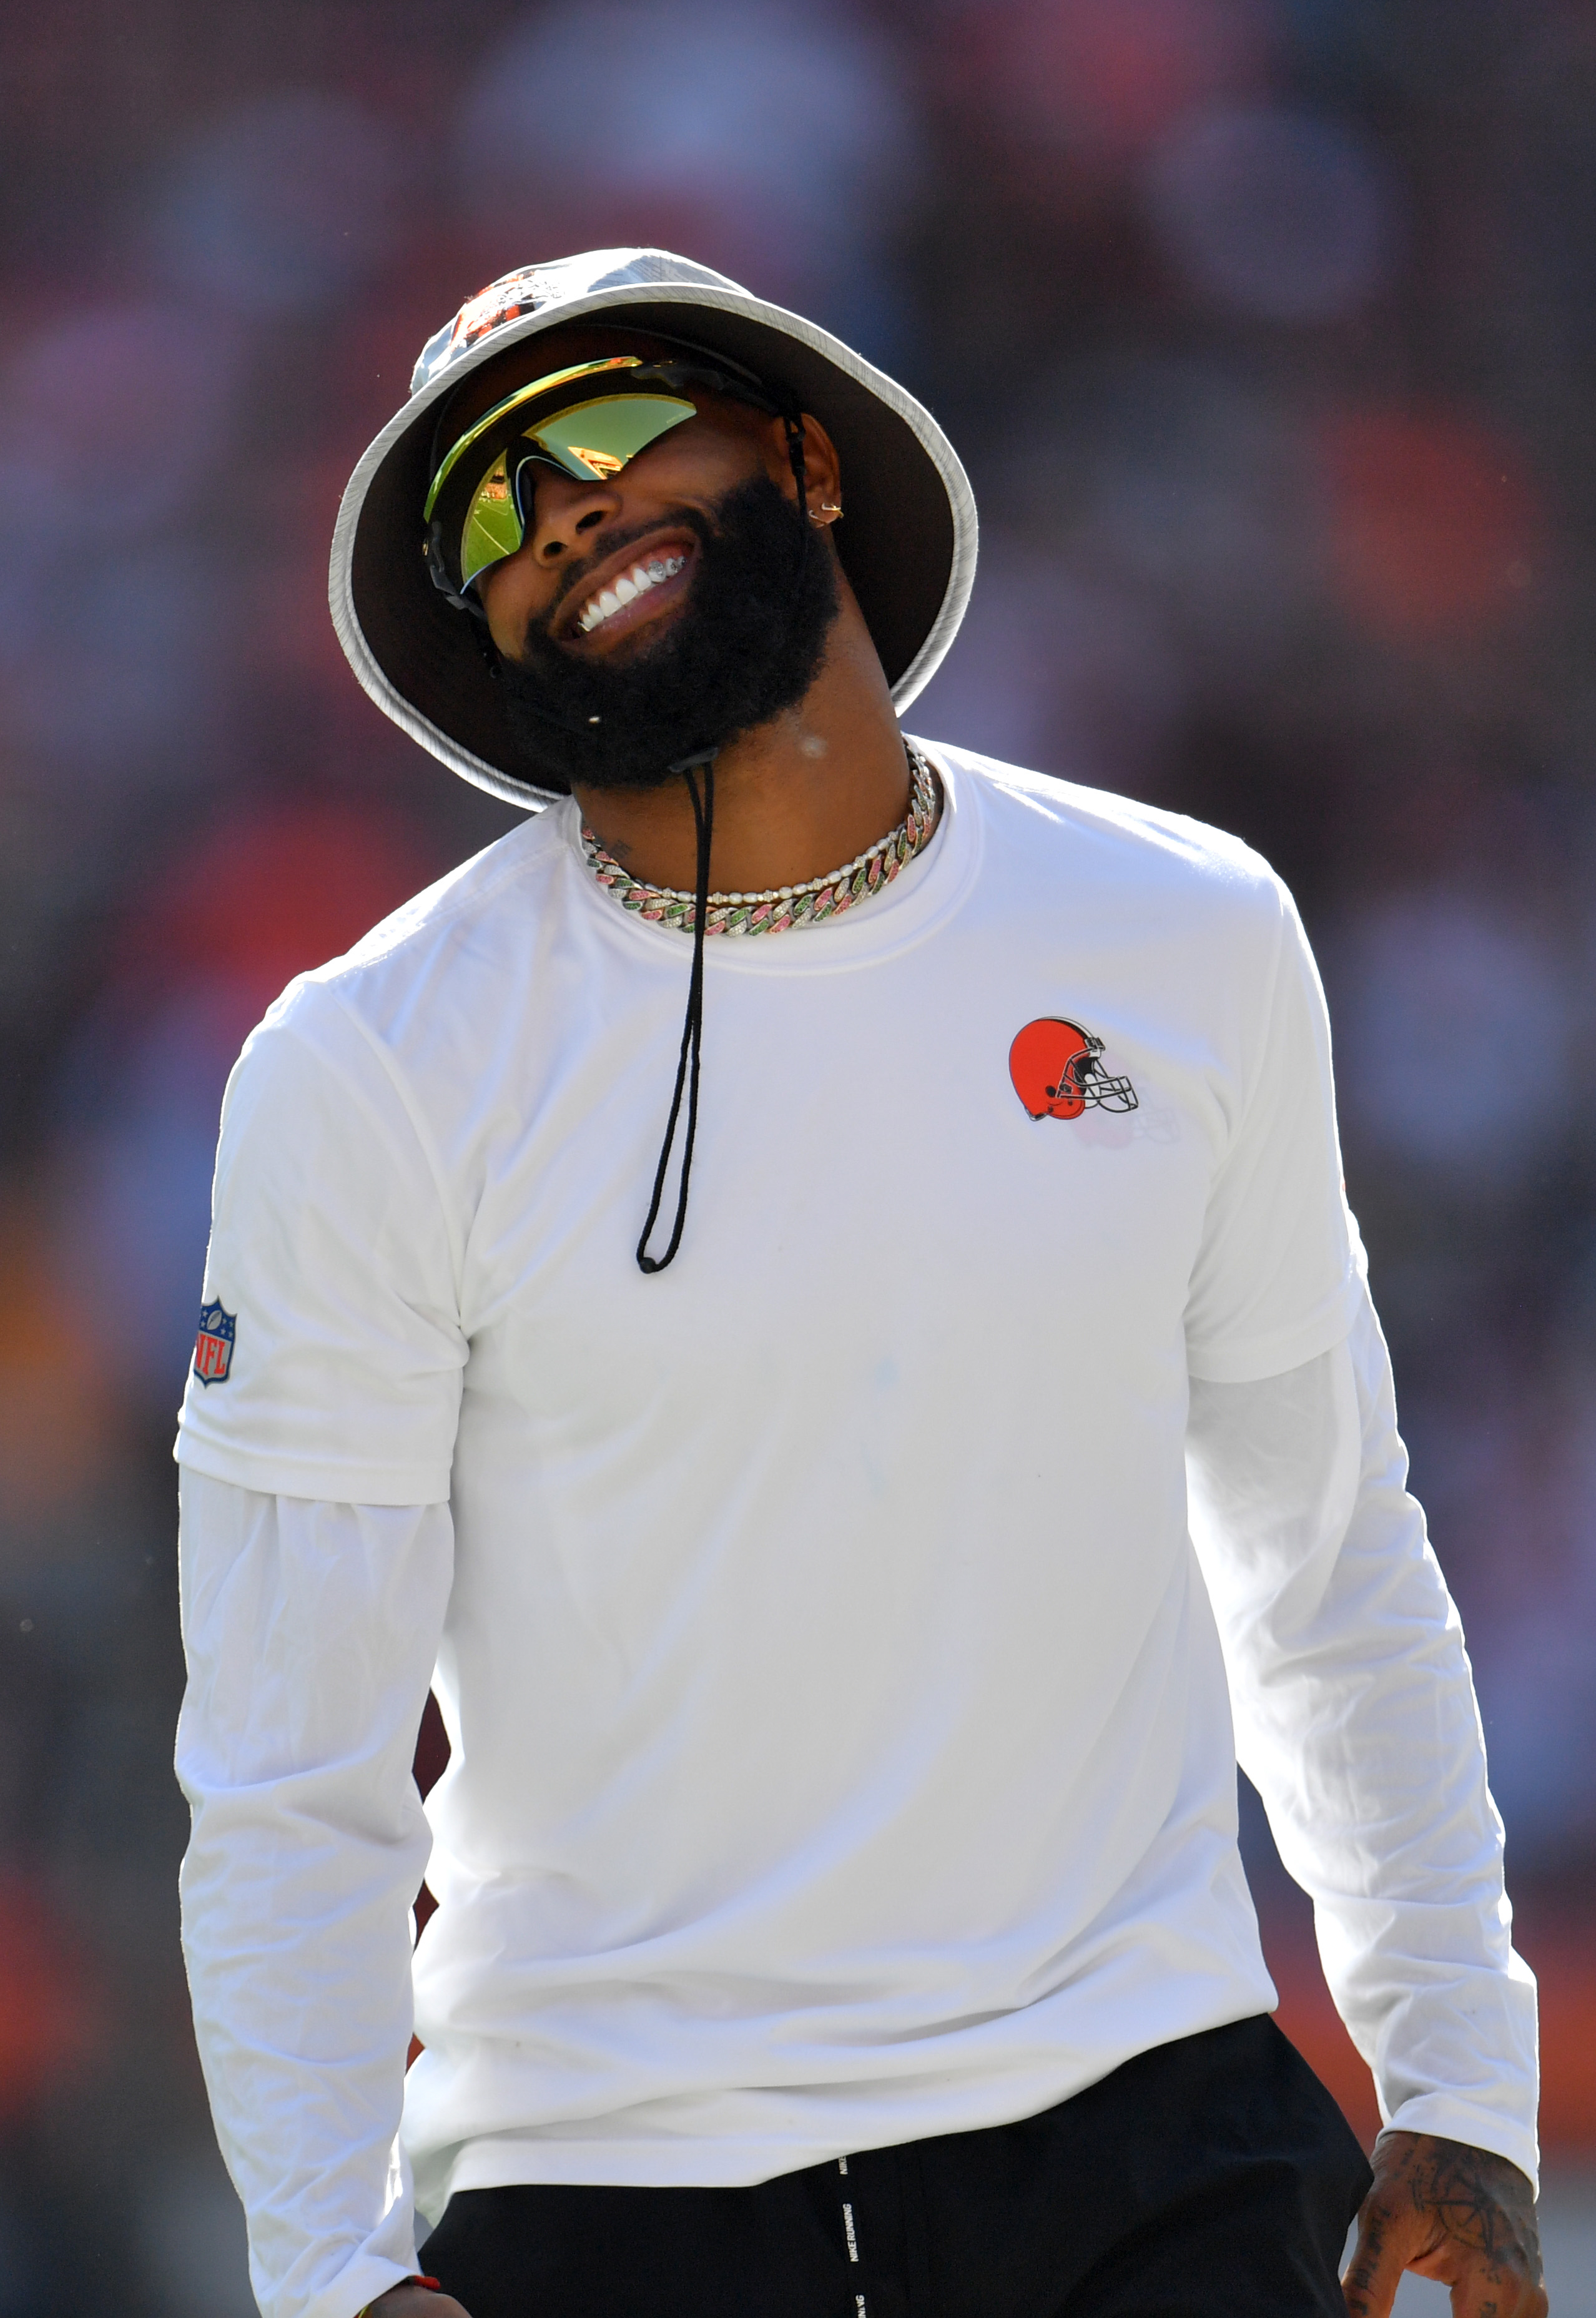 Wide receiver Odell Beckham Jr. #13 of the Cleveland Browns on the field but not in uniform today before the game against the Houston Texans at FirstEnergy Stadium on September 19, 2021 in Cleveland, Ohio.